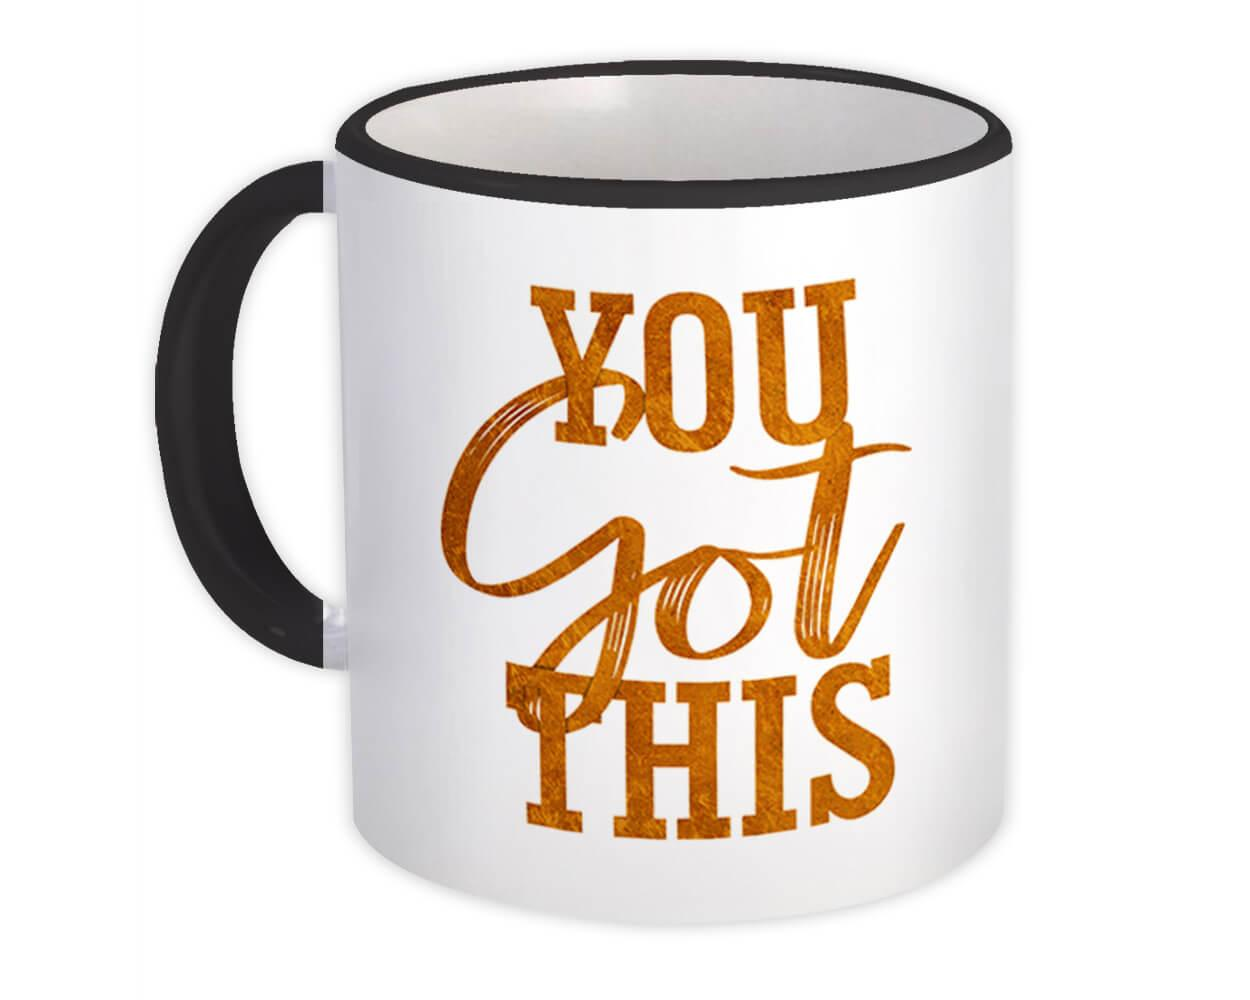 You got this : Gift Mug Motivational Quote Inspire Inspirational